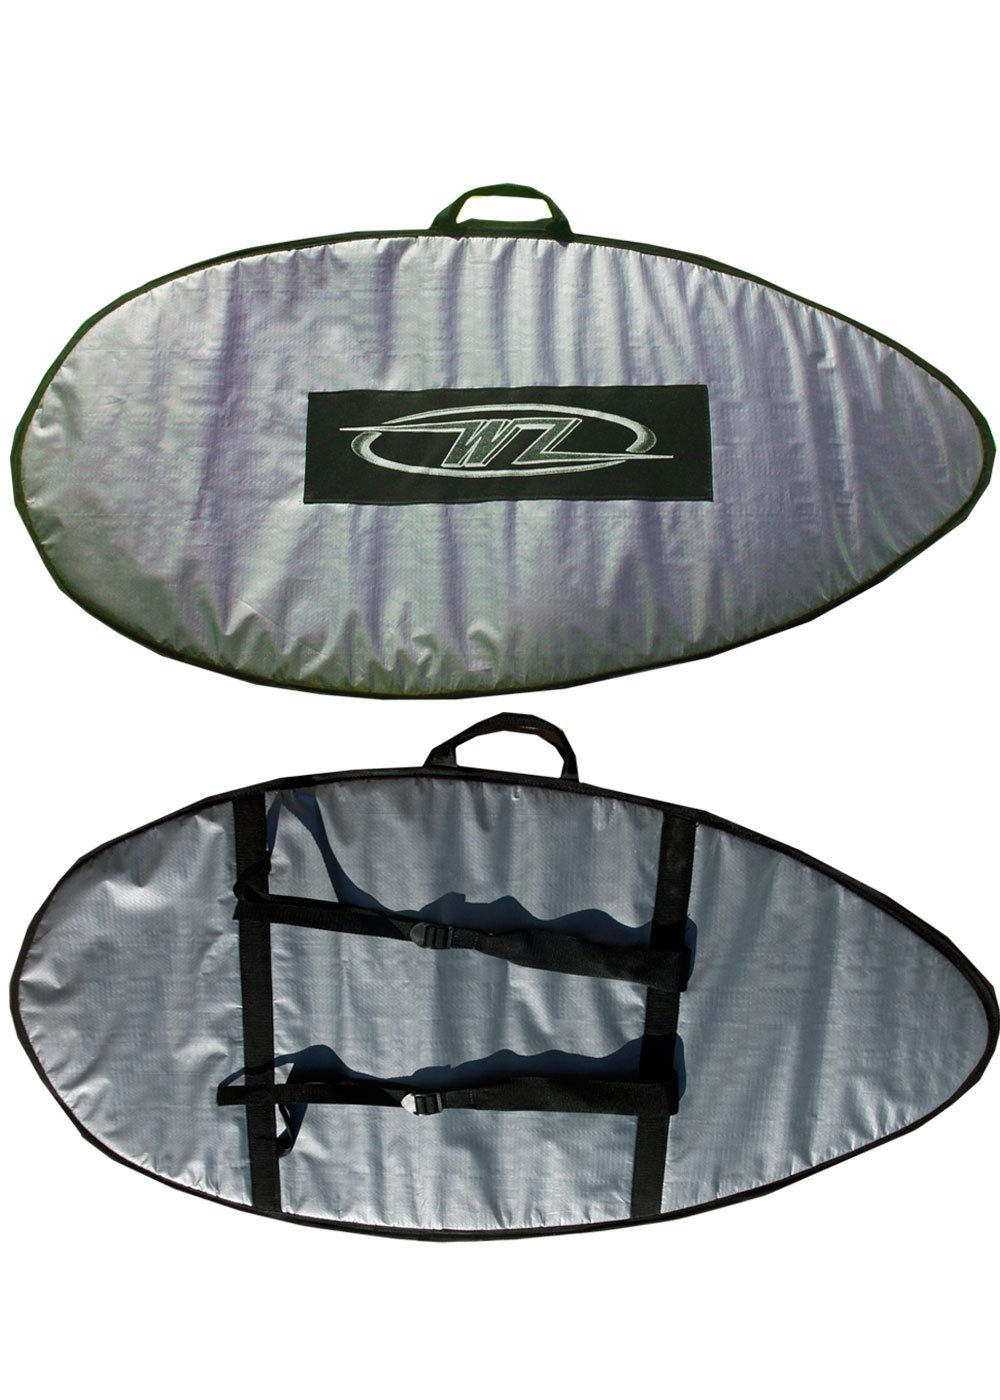 Wave Zone Skimboards Backpack Style Bag 46 or 53 Padded Travel or Day Use Silver